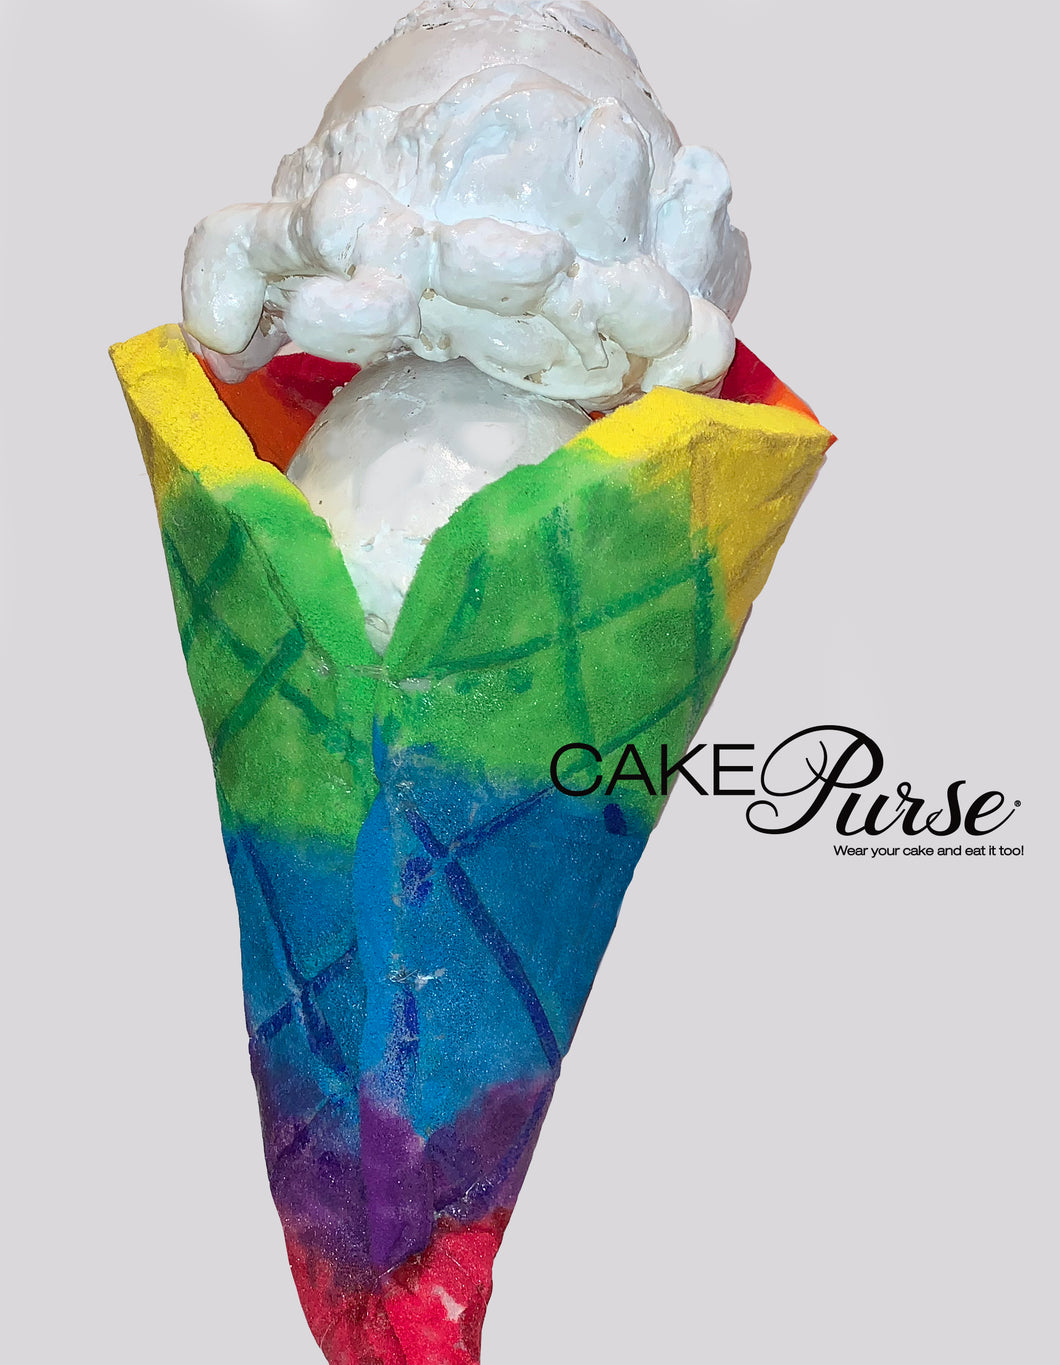 Ice Cream Cone Purse | Ice Cream Cone Handbag | Ice Cream Cone Bag